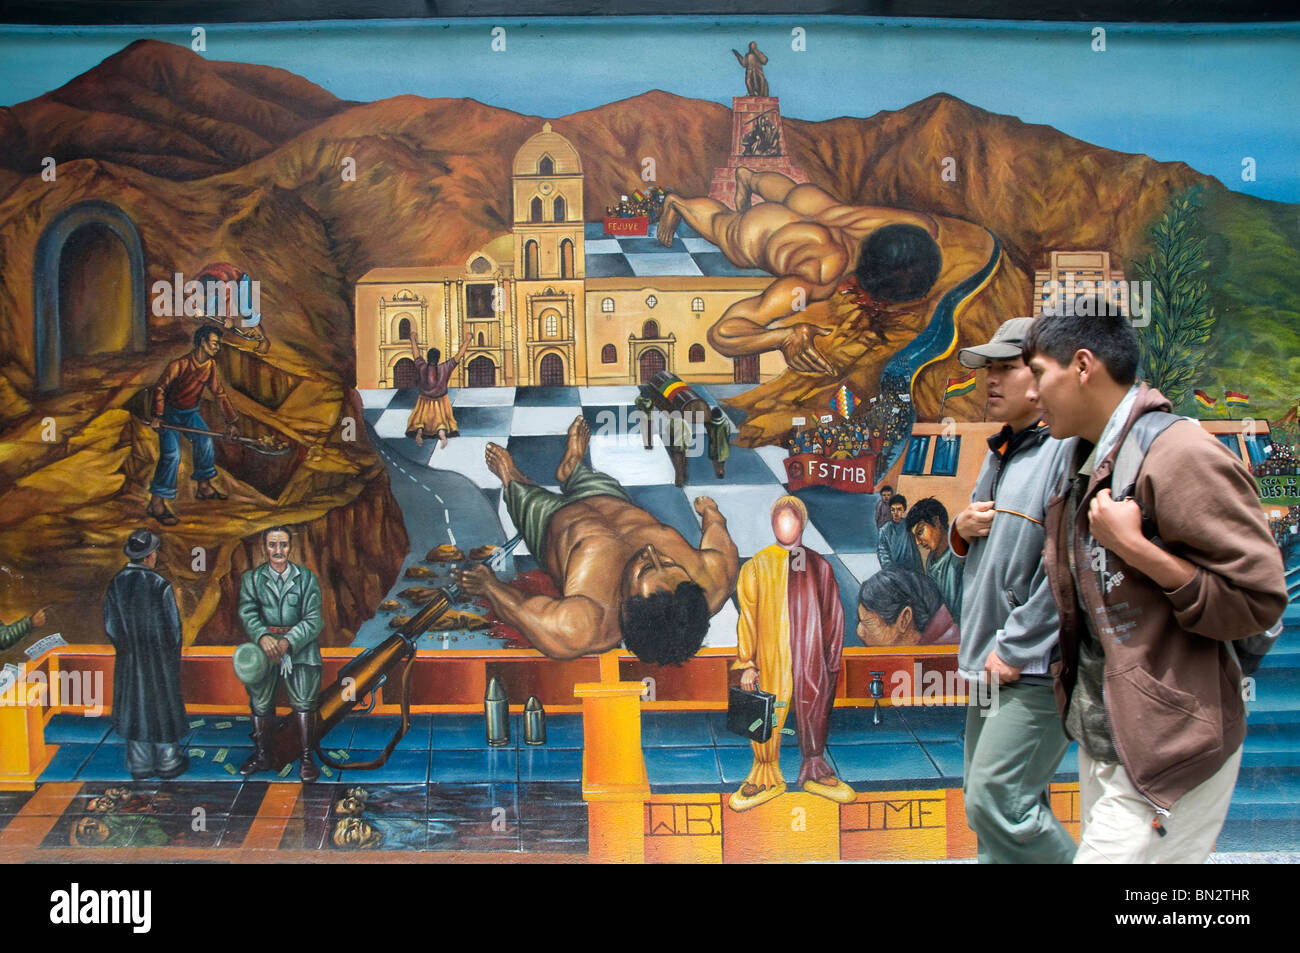 Mural History Of La Paz Mural Showing The History Of Bolivia Stock Photo